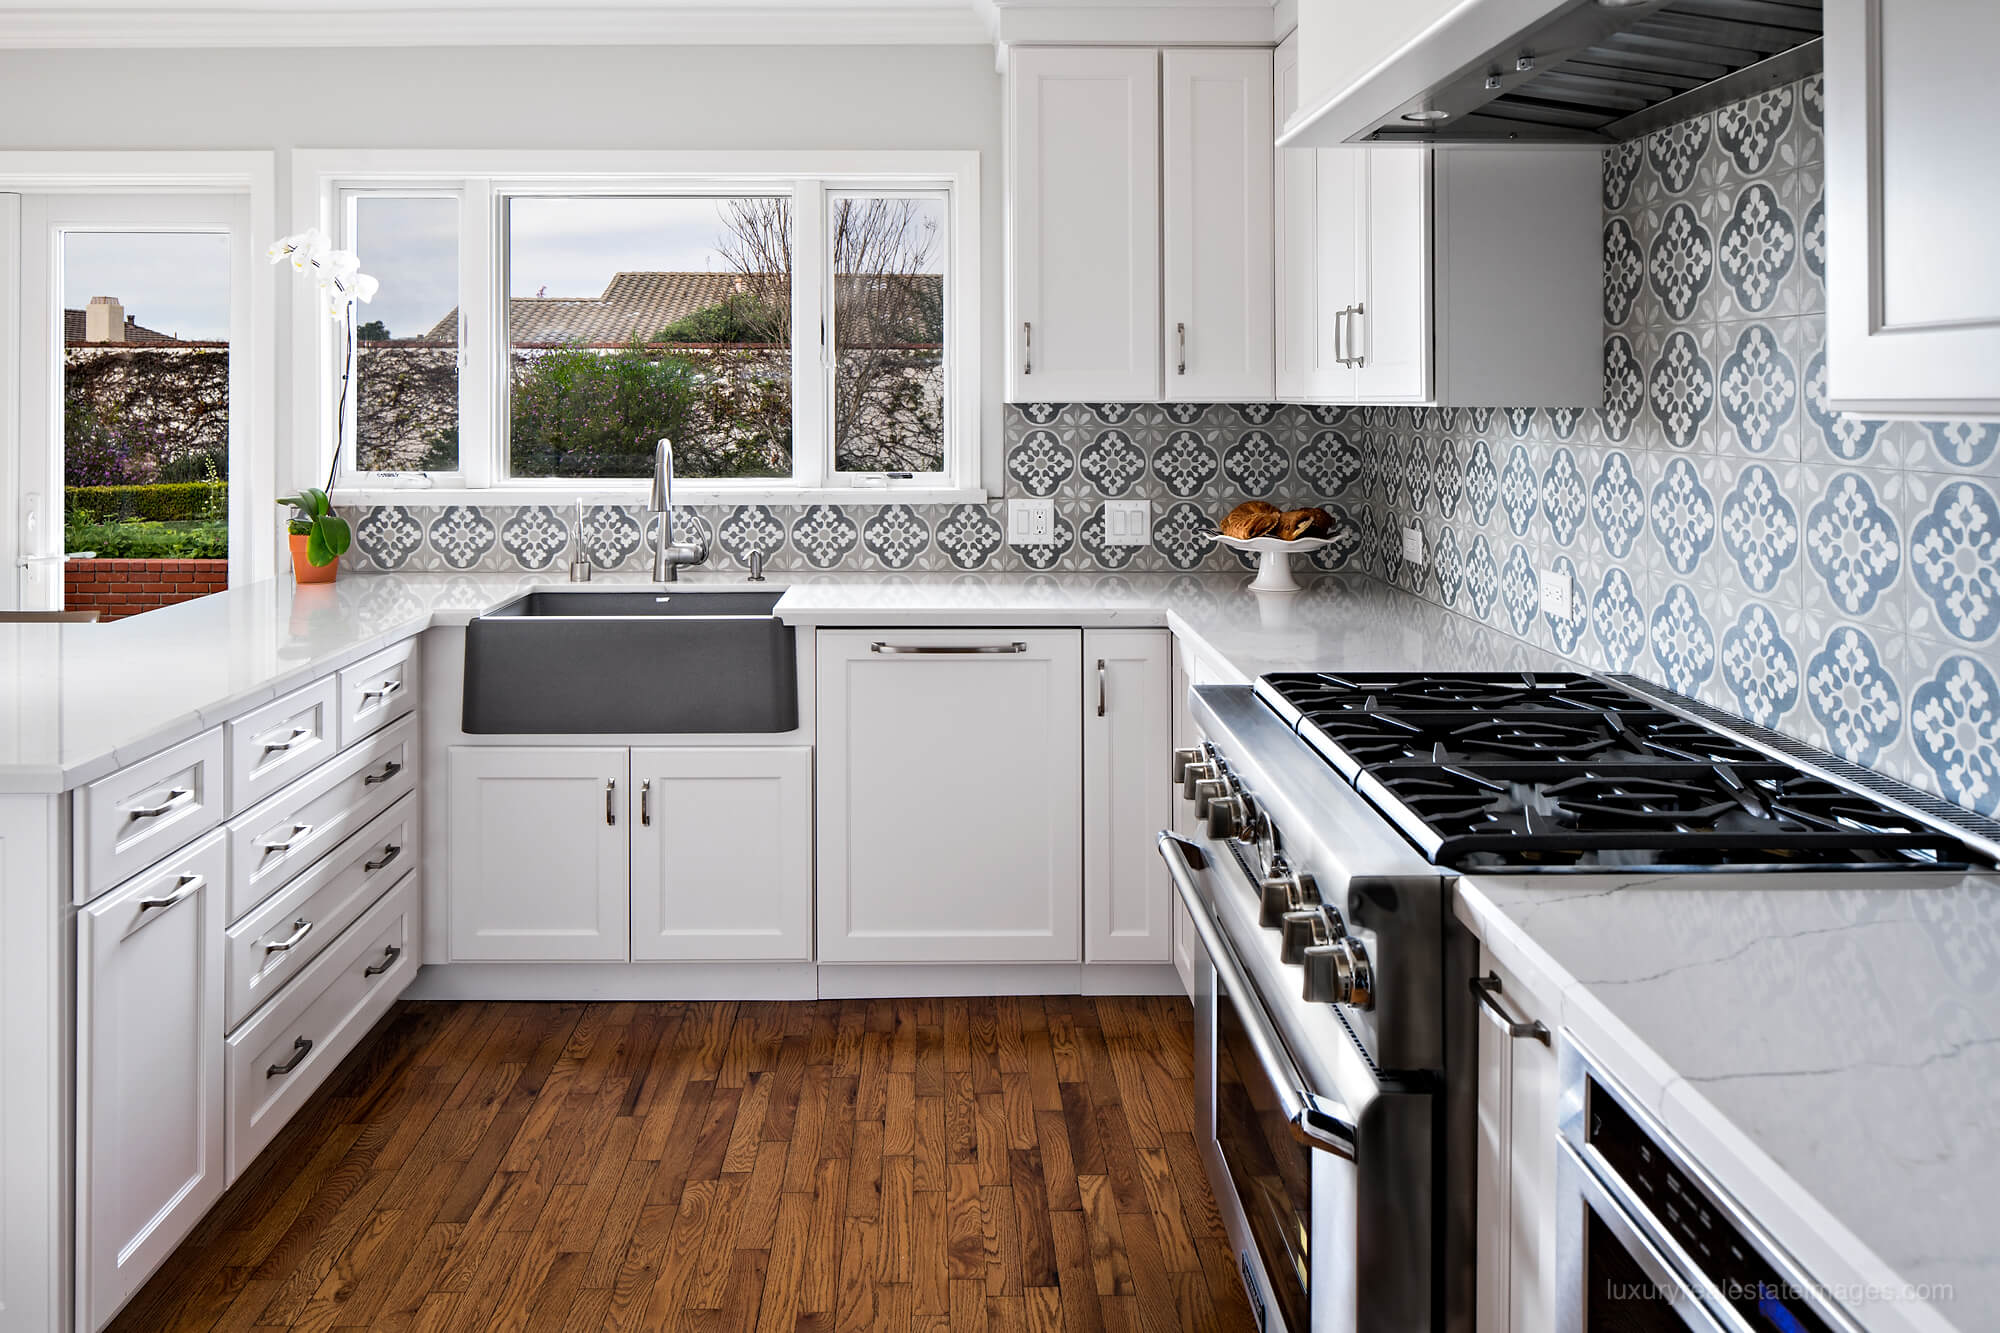 white kitchen with patterned backsplash detail and gray farmhouse sink